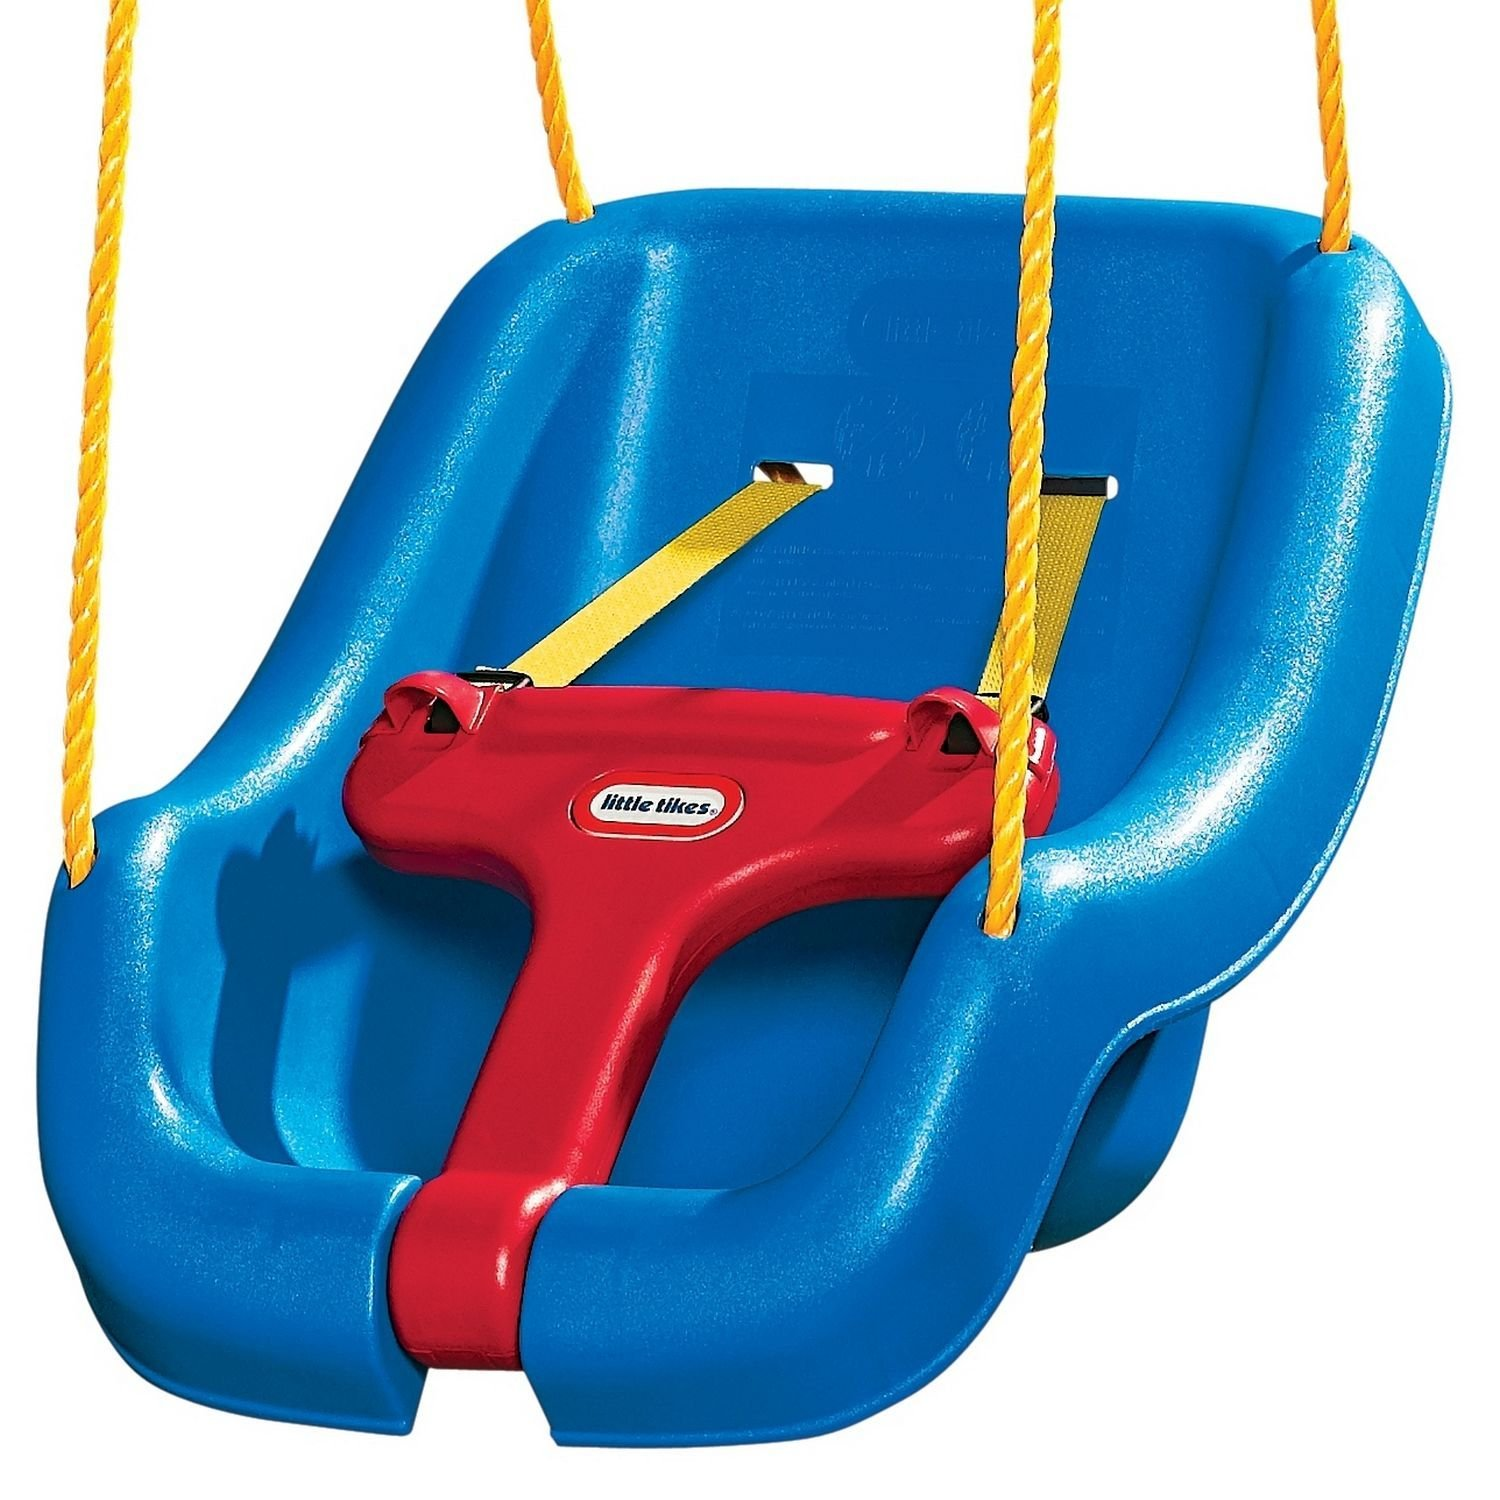 Amazon Little Tikes 2 in 1 Snug & Secure Swing Toys & Games